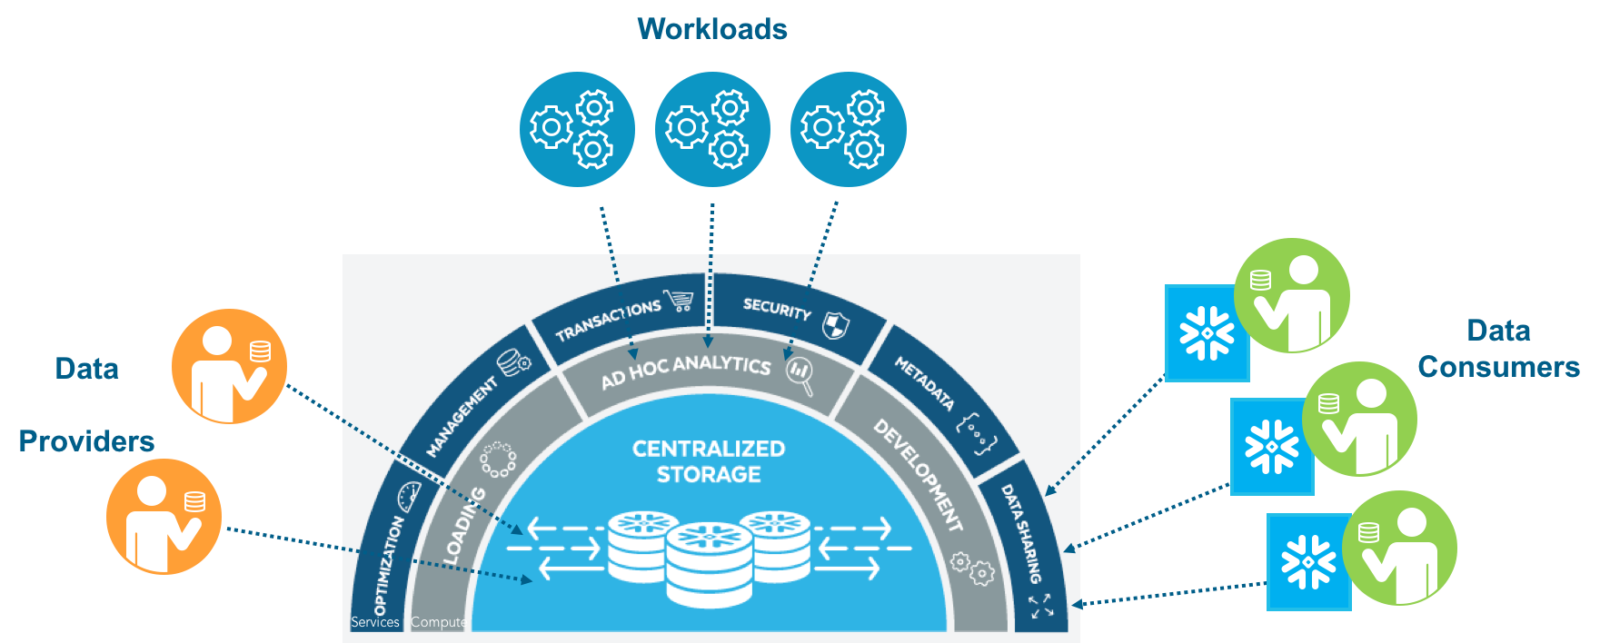 Snowflake Database Architecture - Do You Even Data?